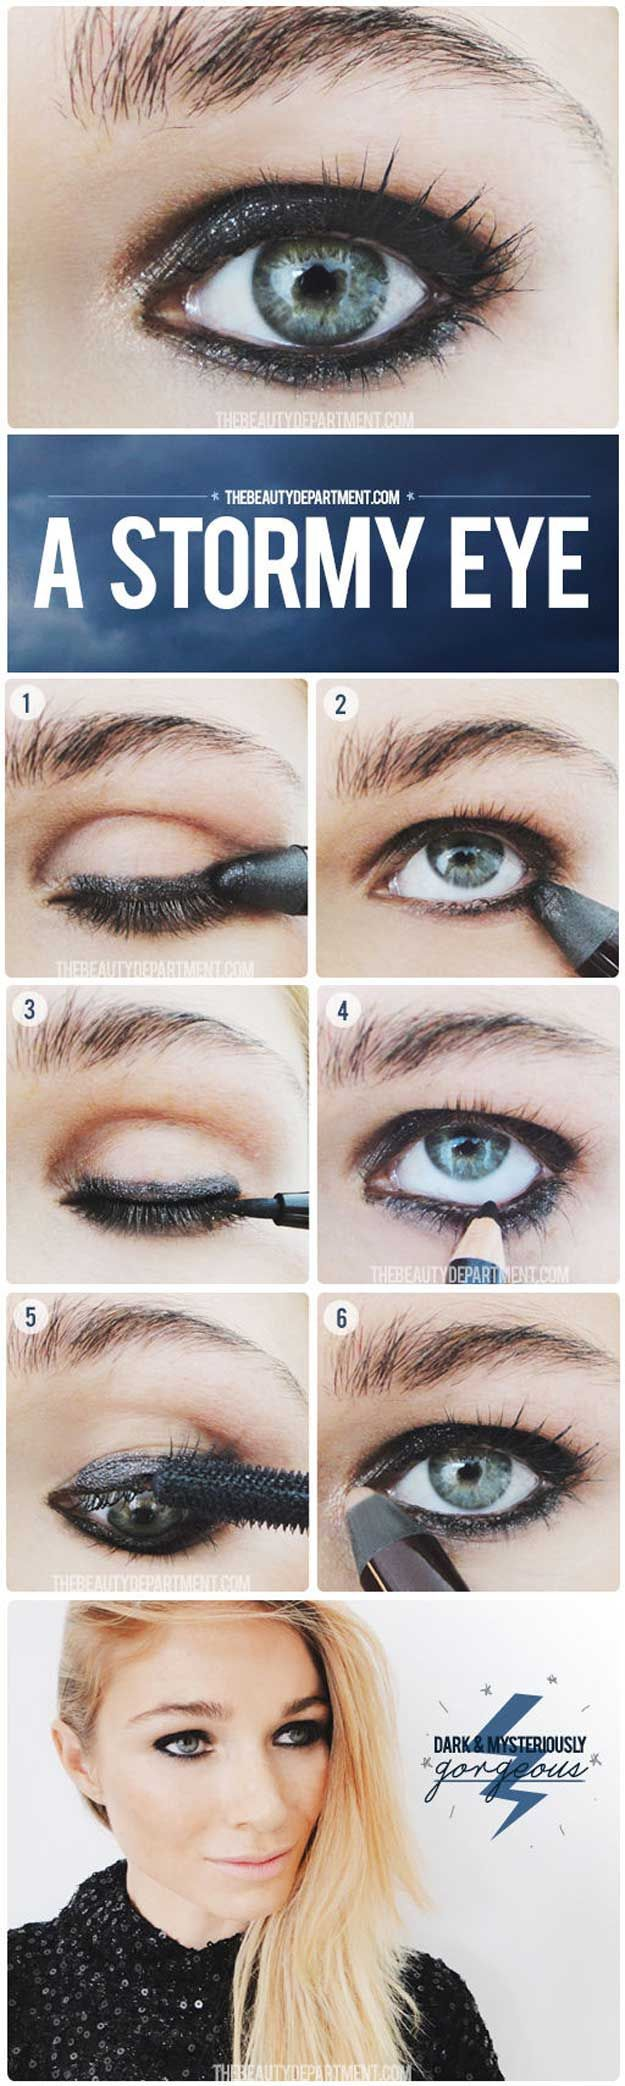 35 Glitter Eye Makeup Tutorials - Nighttime Moody Makeup - Step By Step DIY Glitter Eye Make Up Tutorials that WIll Make Yours Eyes Sparkle - Silver and Gold Linda Hallberg Looks, Awesome Eyeshadow Products, Urban Decay and Looks for Your Eyebrows to Make You Look Like a Beauty - thegoddess.com/glitter-eye-makeup-tutorials #makeuplooksstepbystep